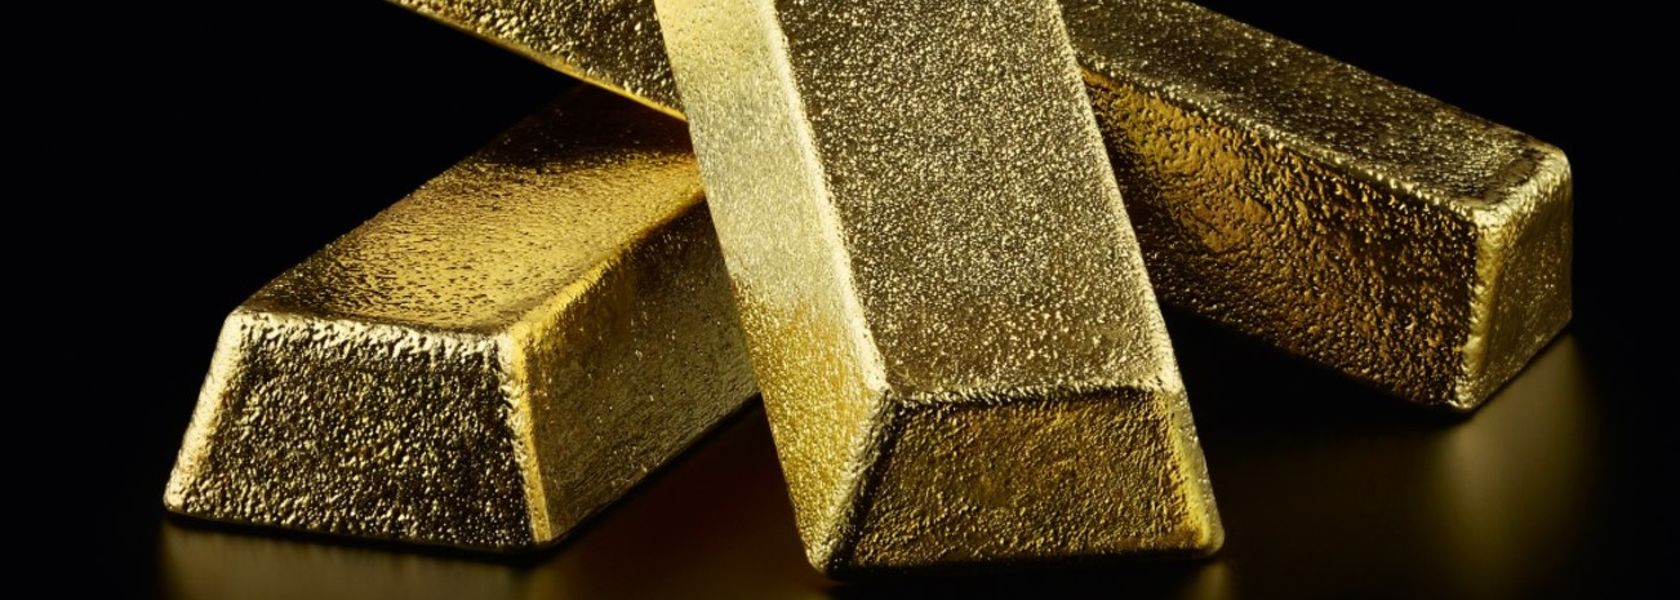 Gold up around US$1,800/oz again, gold ETFs hit records